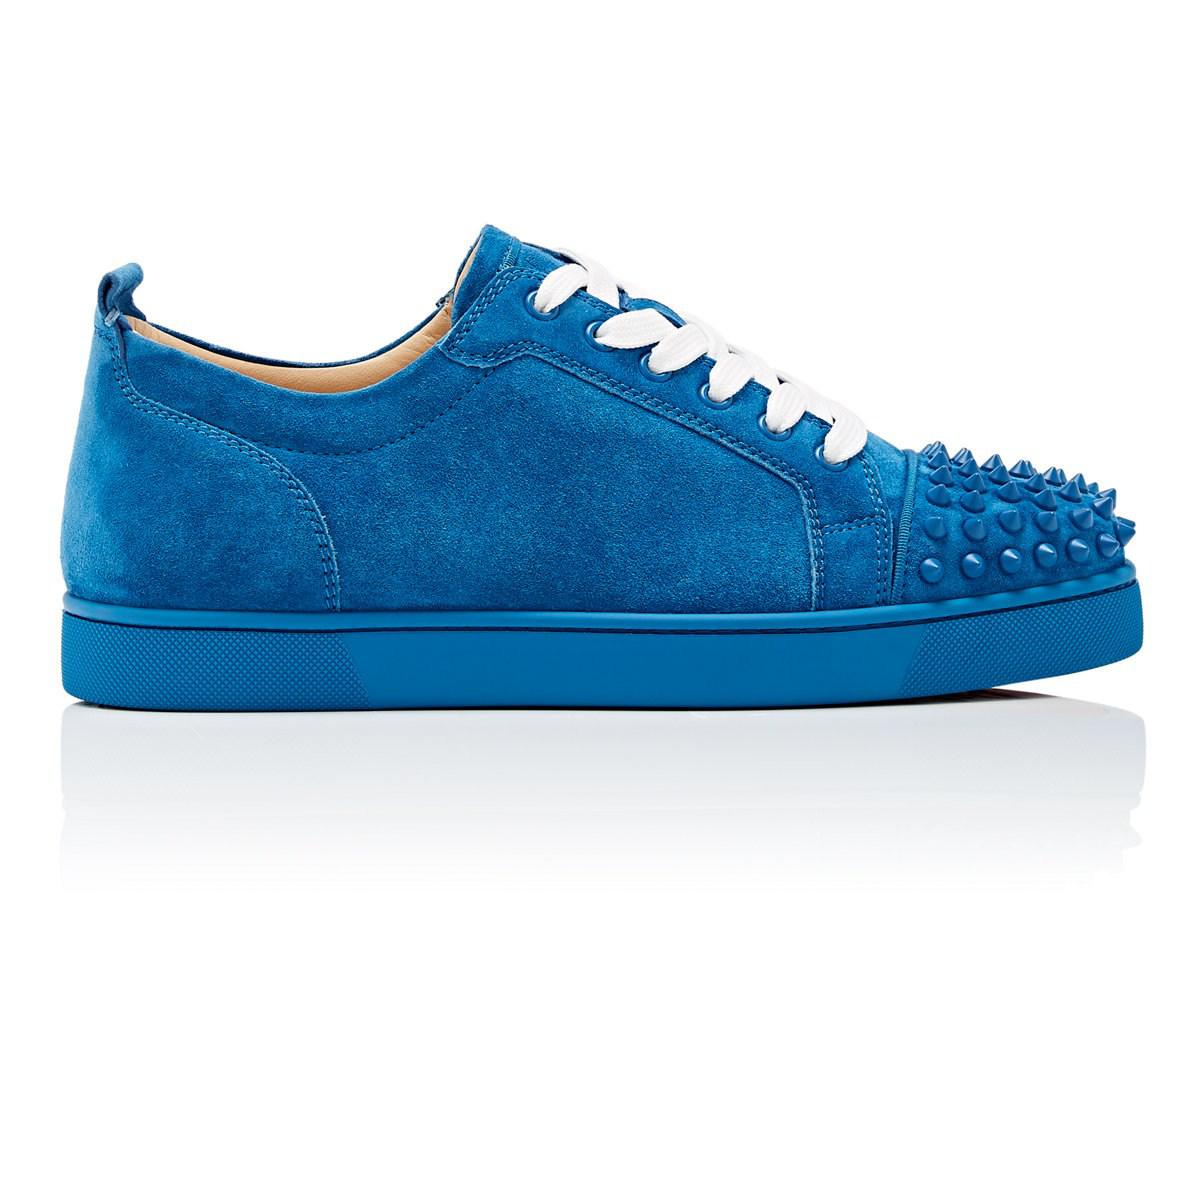 bd5a45fdbe2 Christian Louboutin Louis Junior Spikes Flat Suede Sneakers in Blue ...